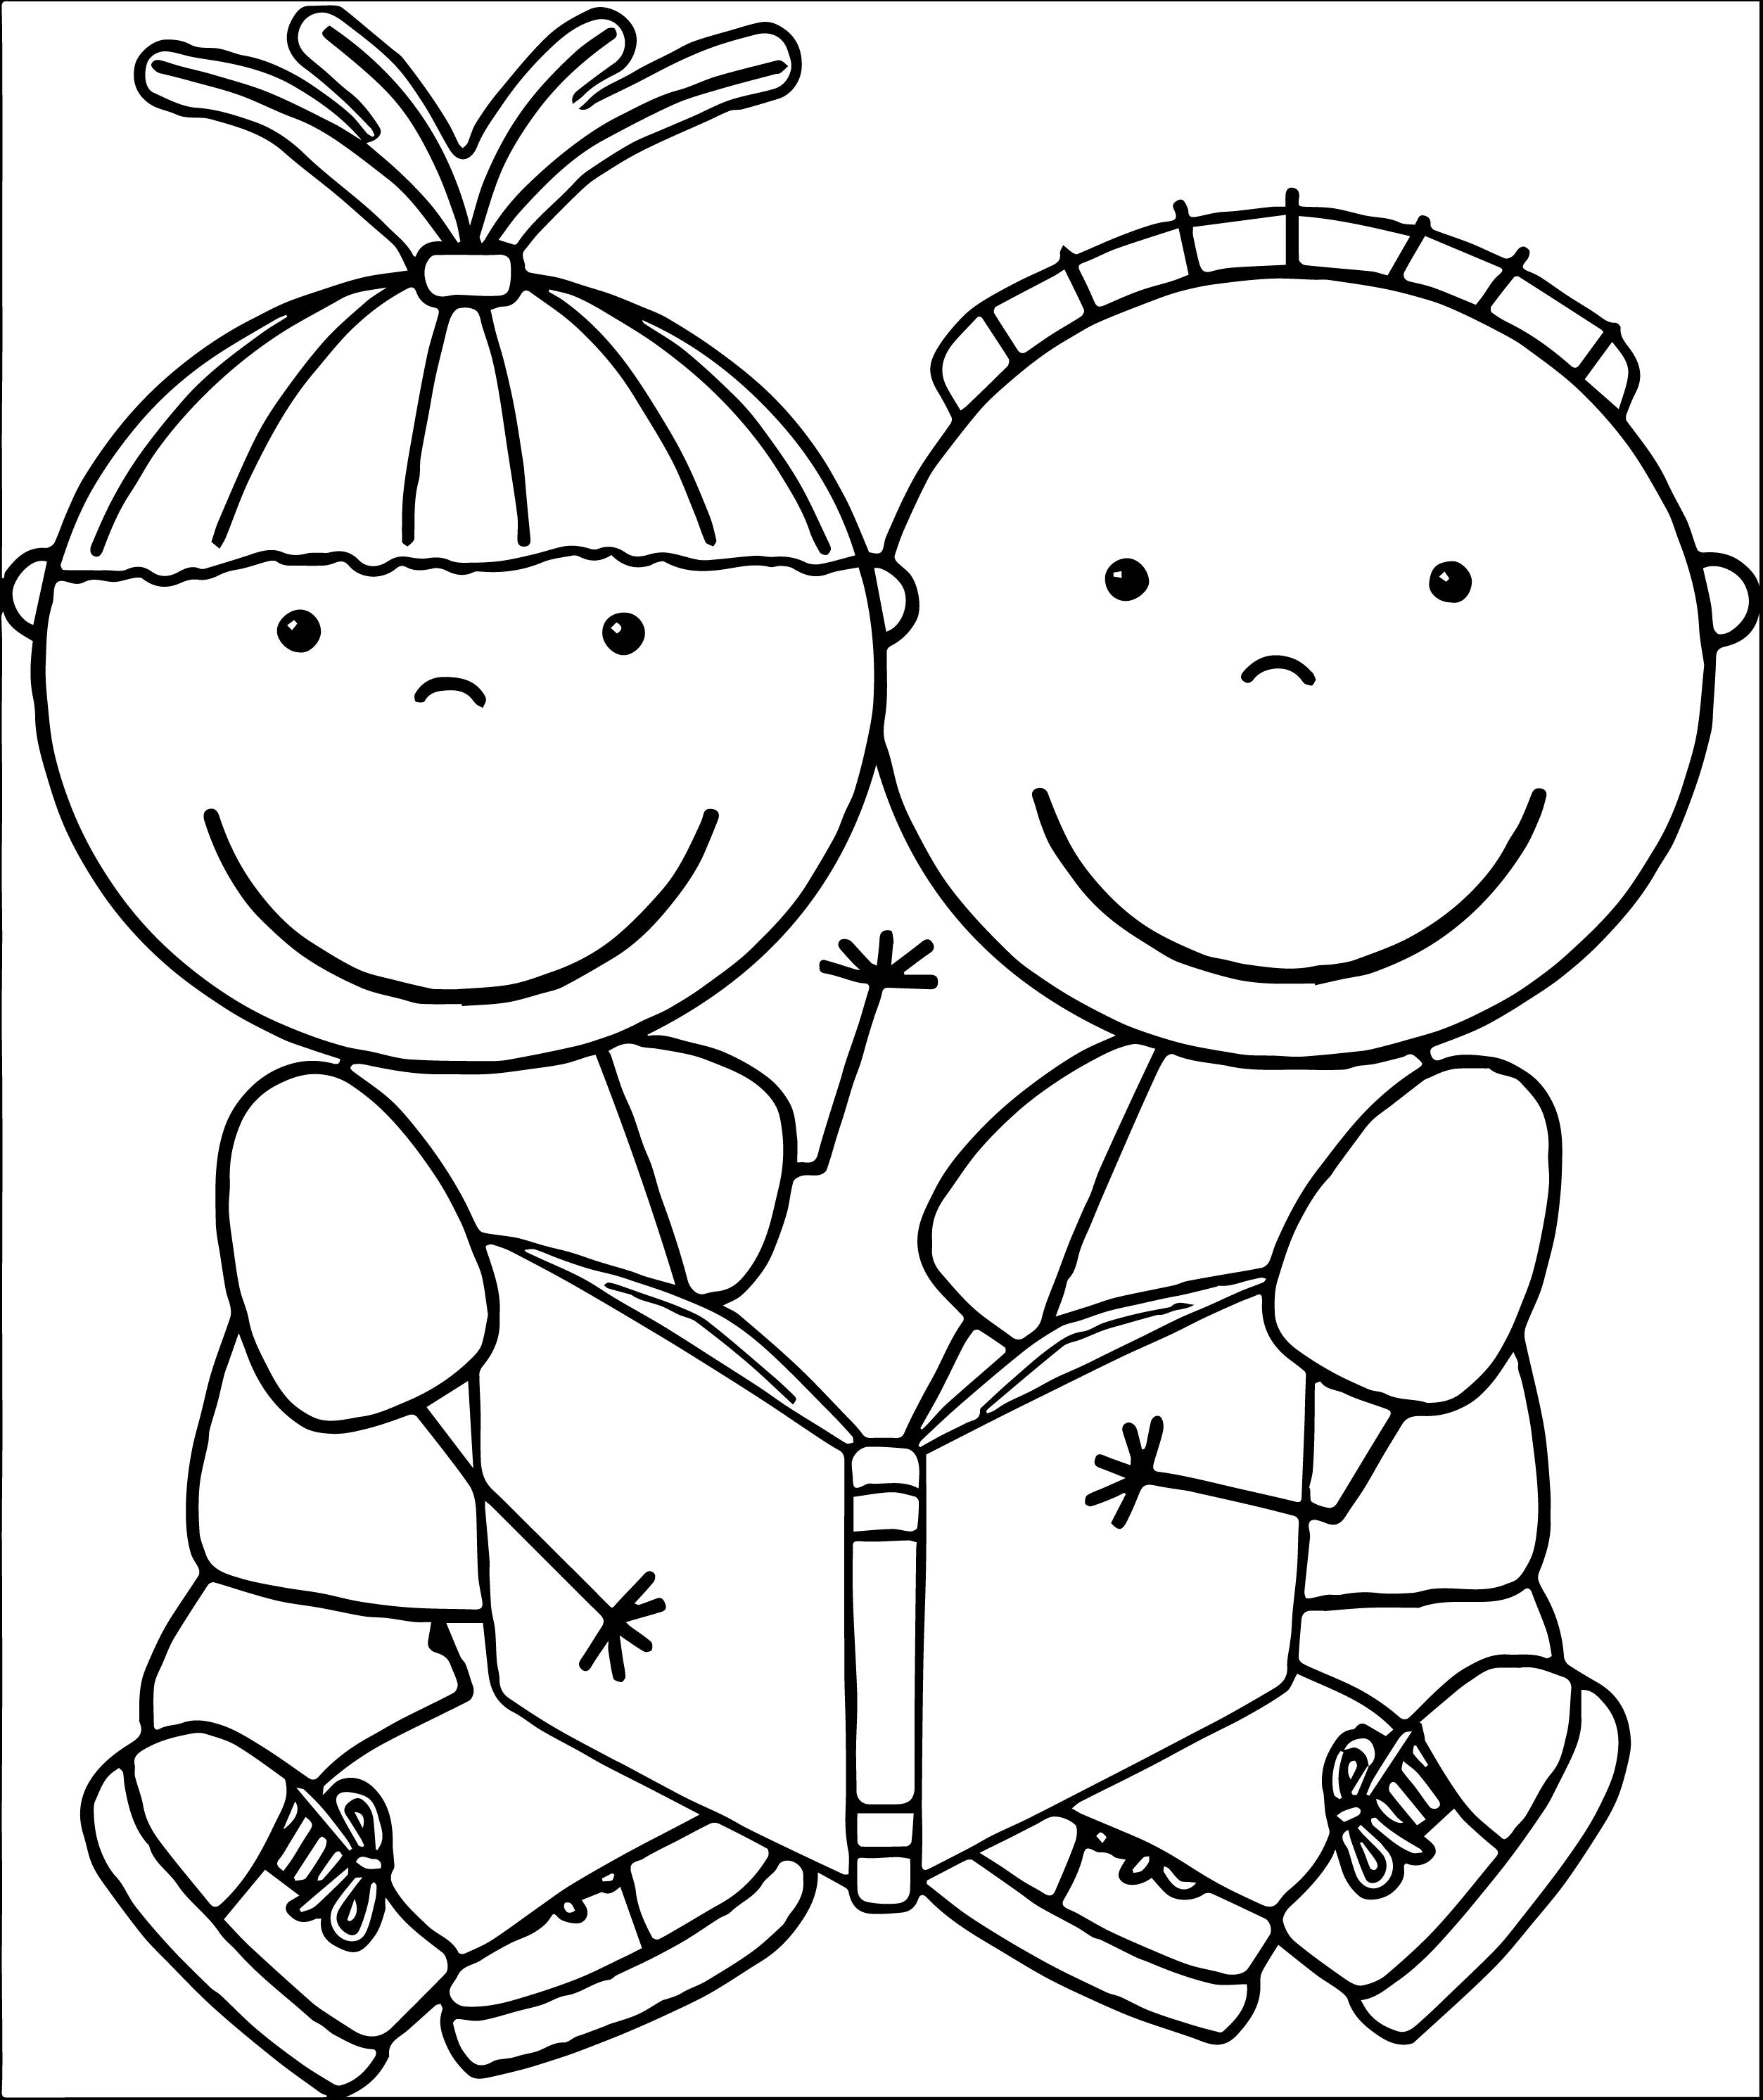 students working together coloring pages - photo#45